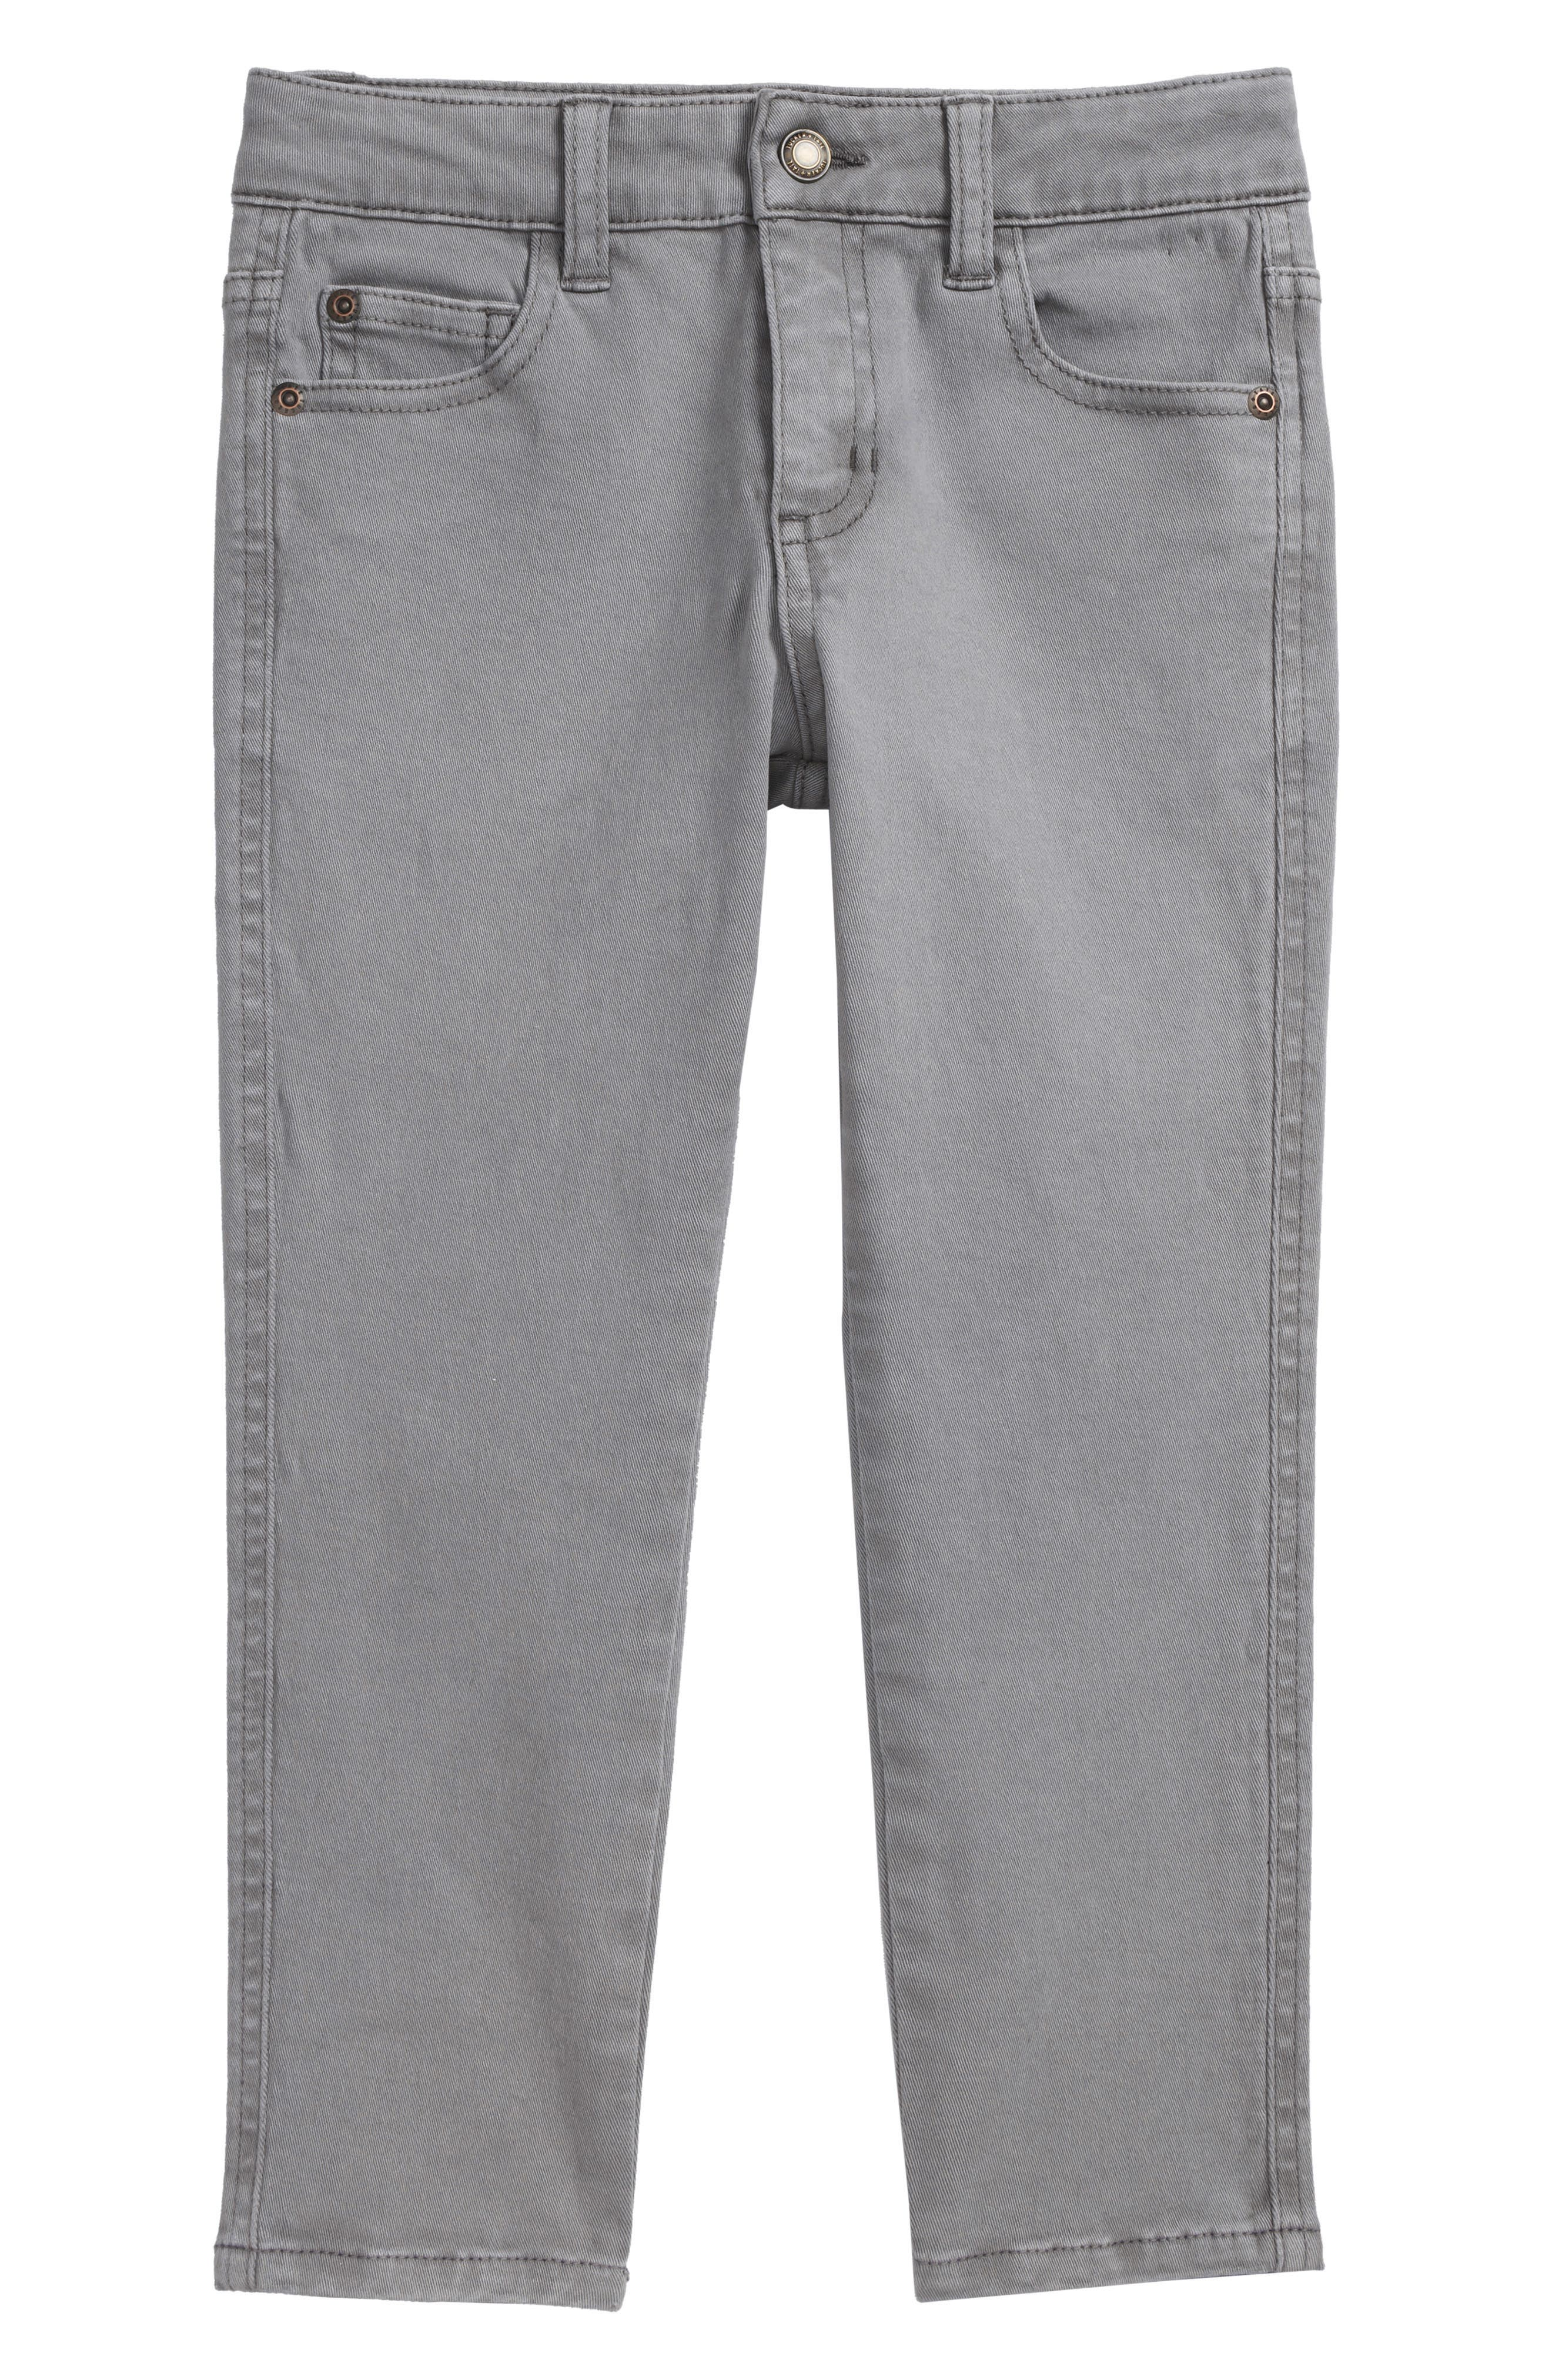 Stretch Chino Pants,                         Main,                         color, GREY FROST